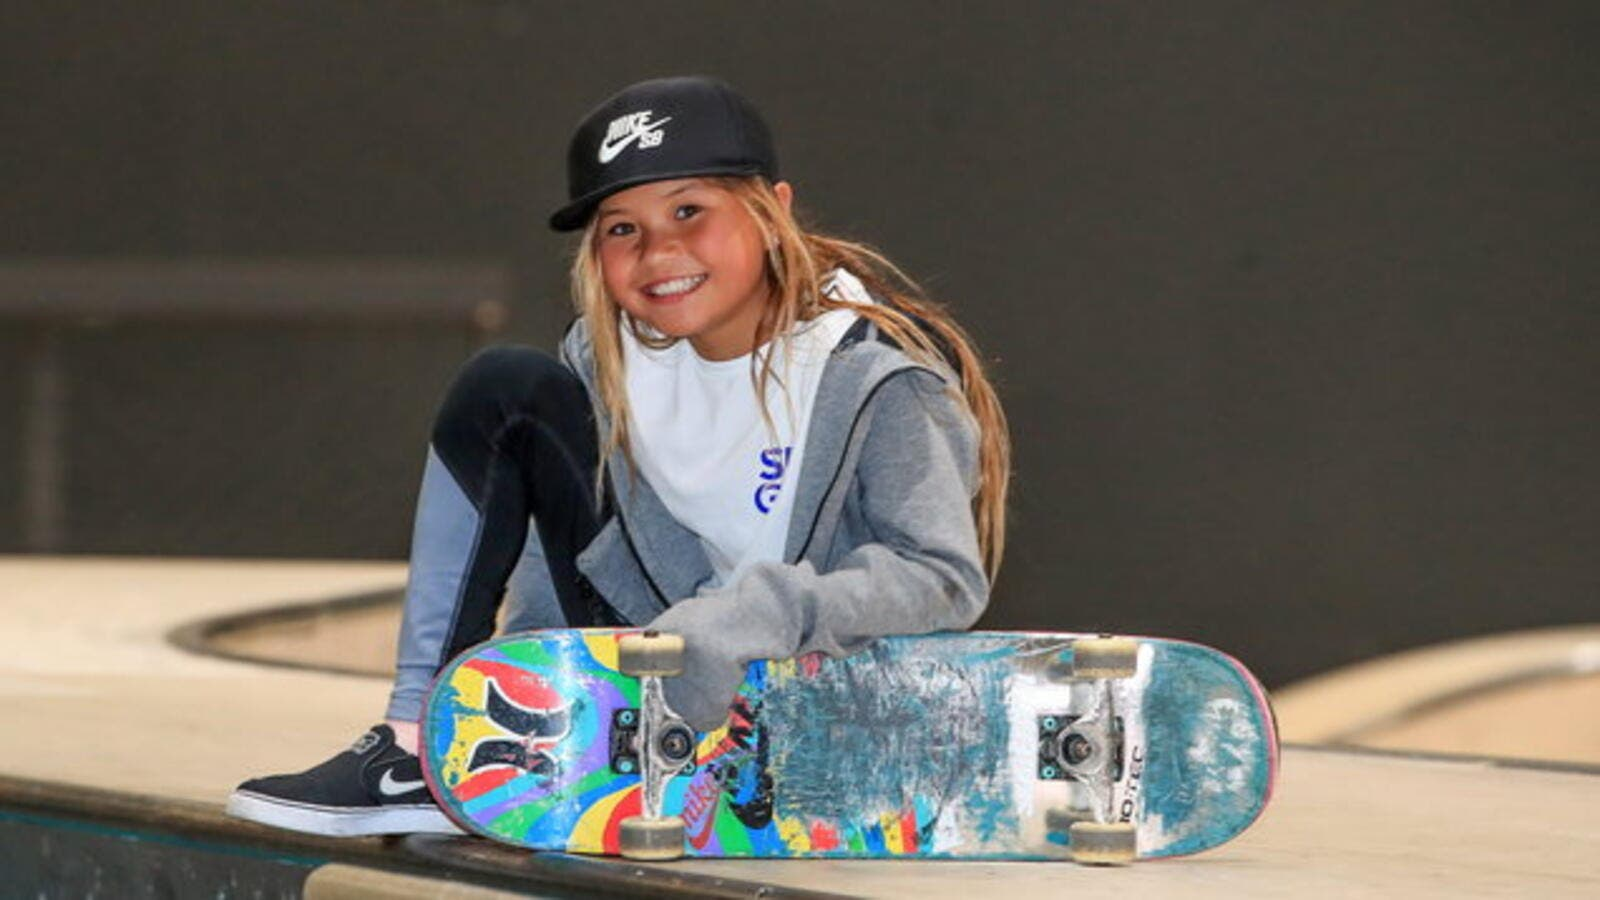 Brown, youngest professional skateboarder will be 12 at start of Tokyo Games in 2020 (Photo: virginmediatelevision)